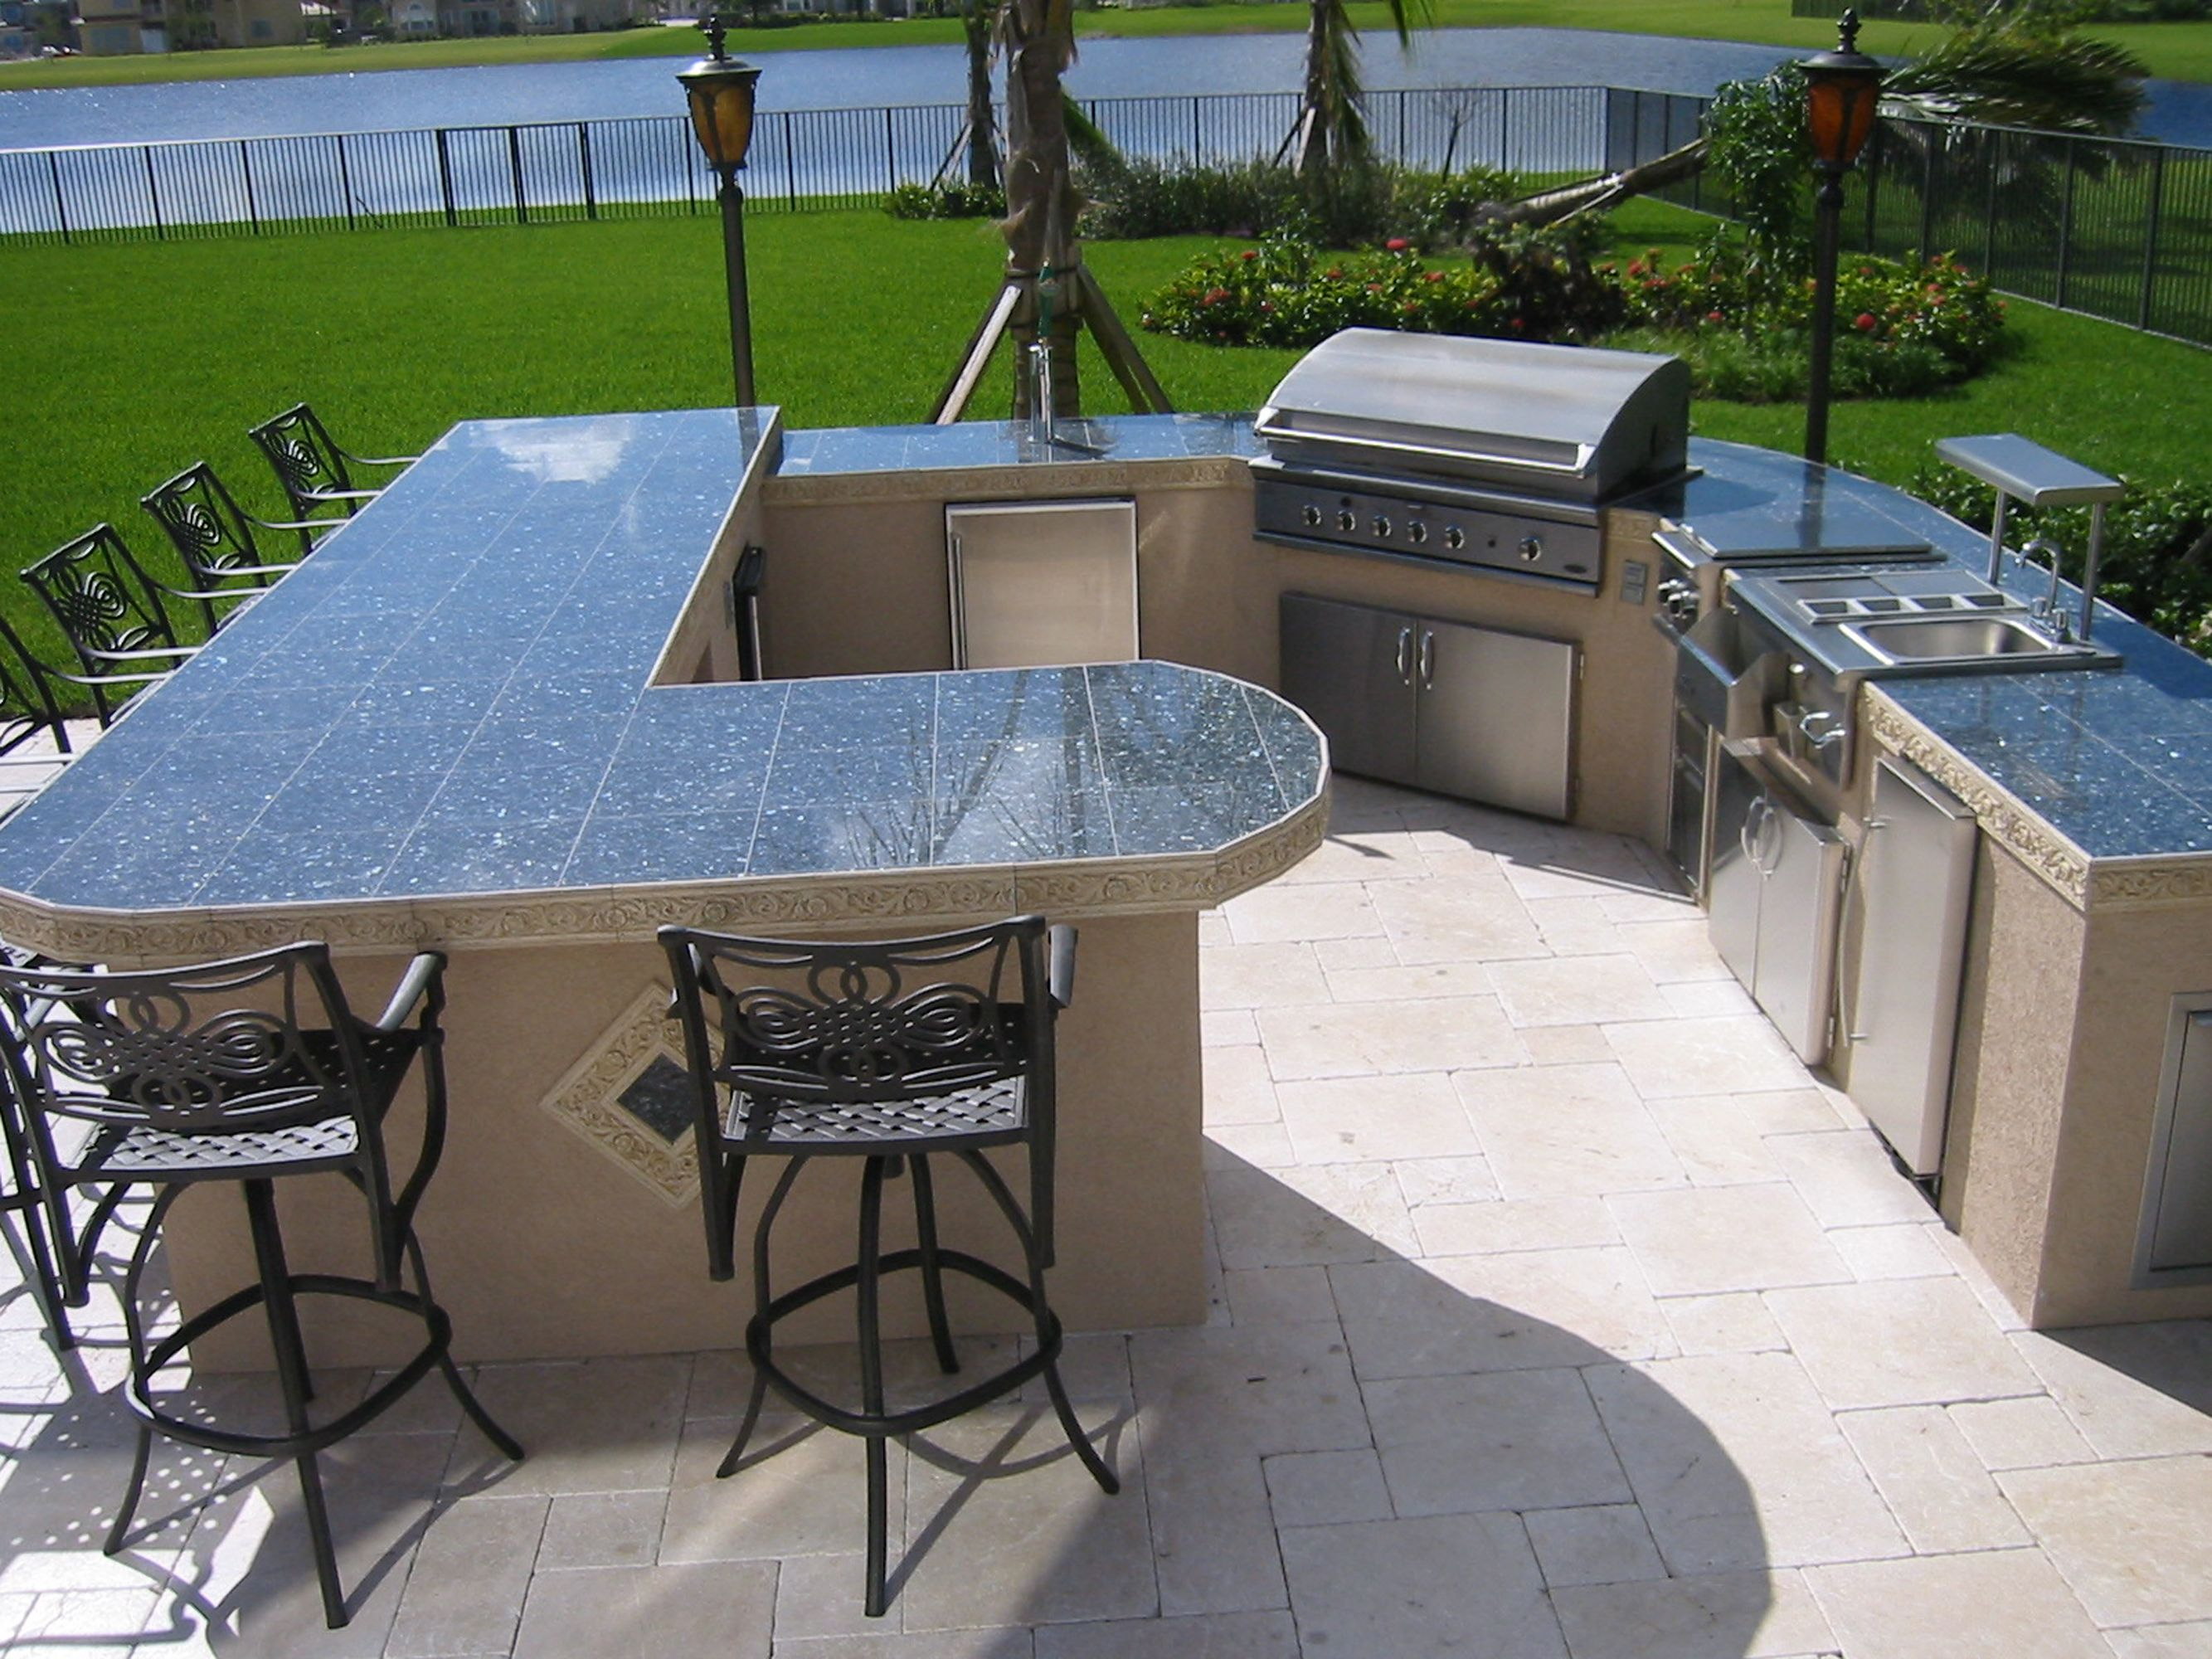 Outdoor Kitchen Design Images Backyard Bar Bar Plans And Gas Bbq